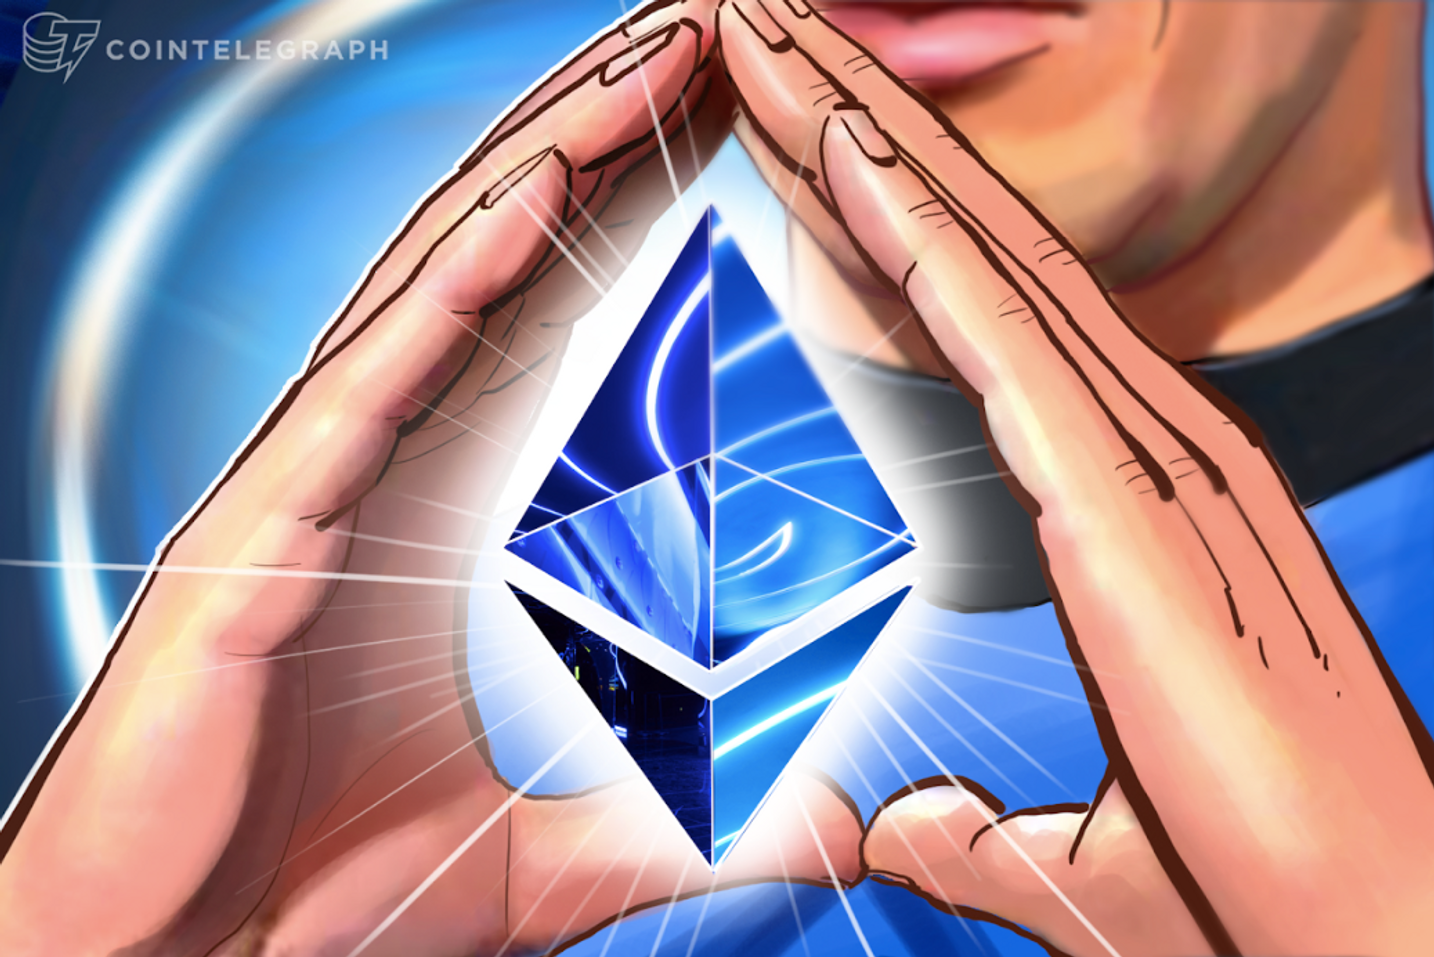 Ethereum Scam App Appears on Google Play Store, Malware Researcher Reports